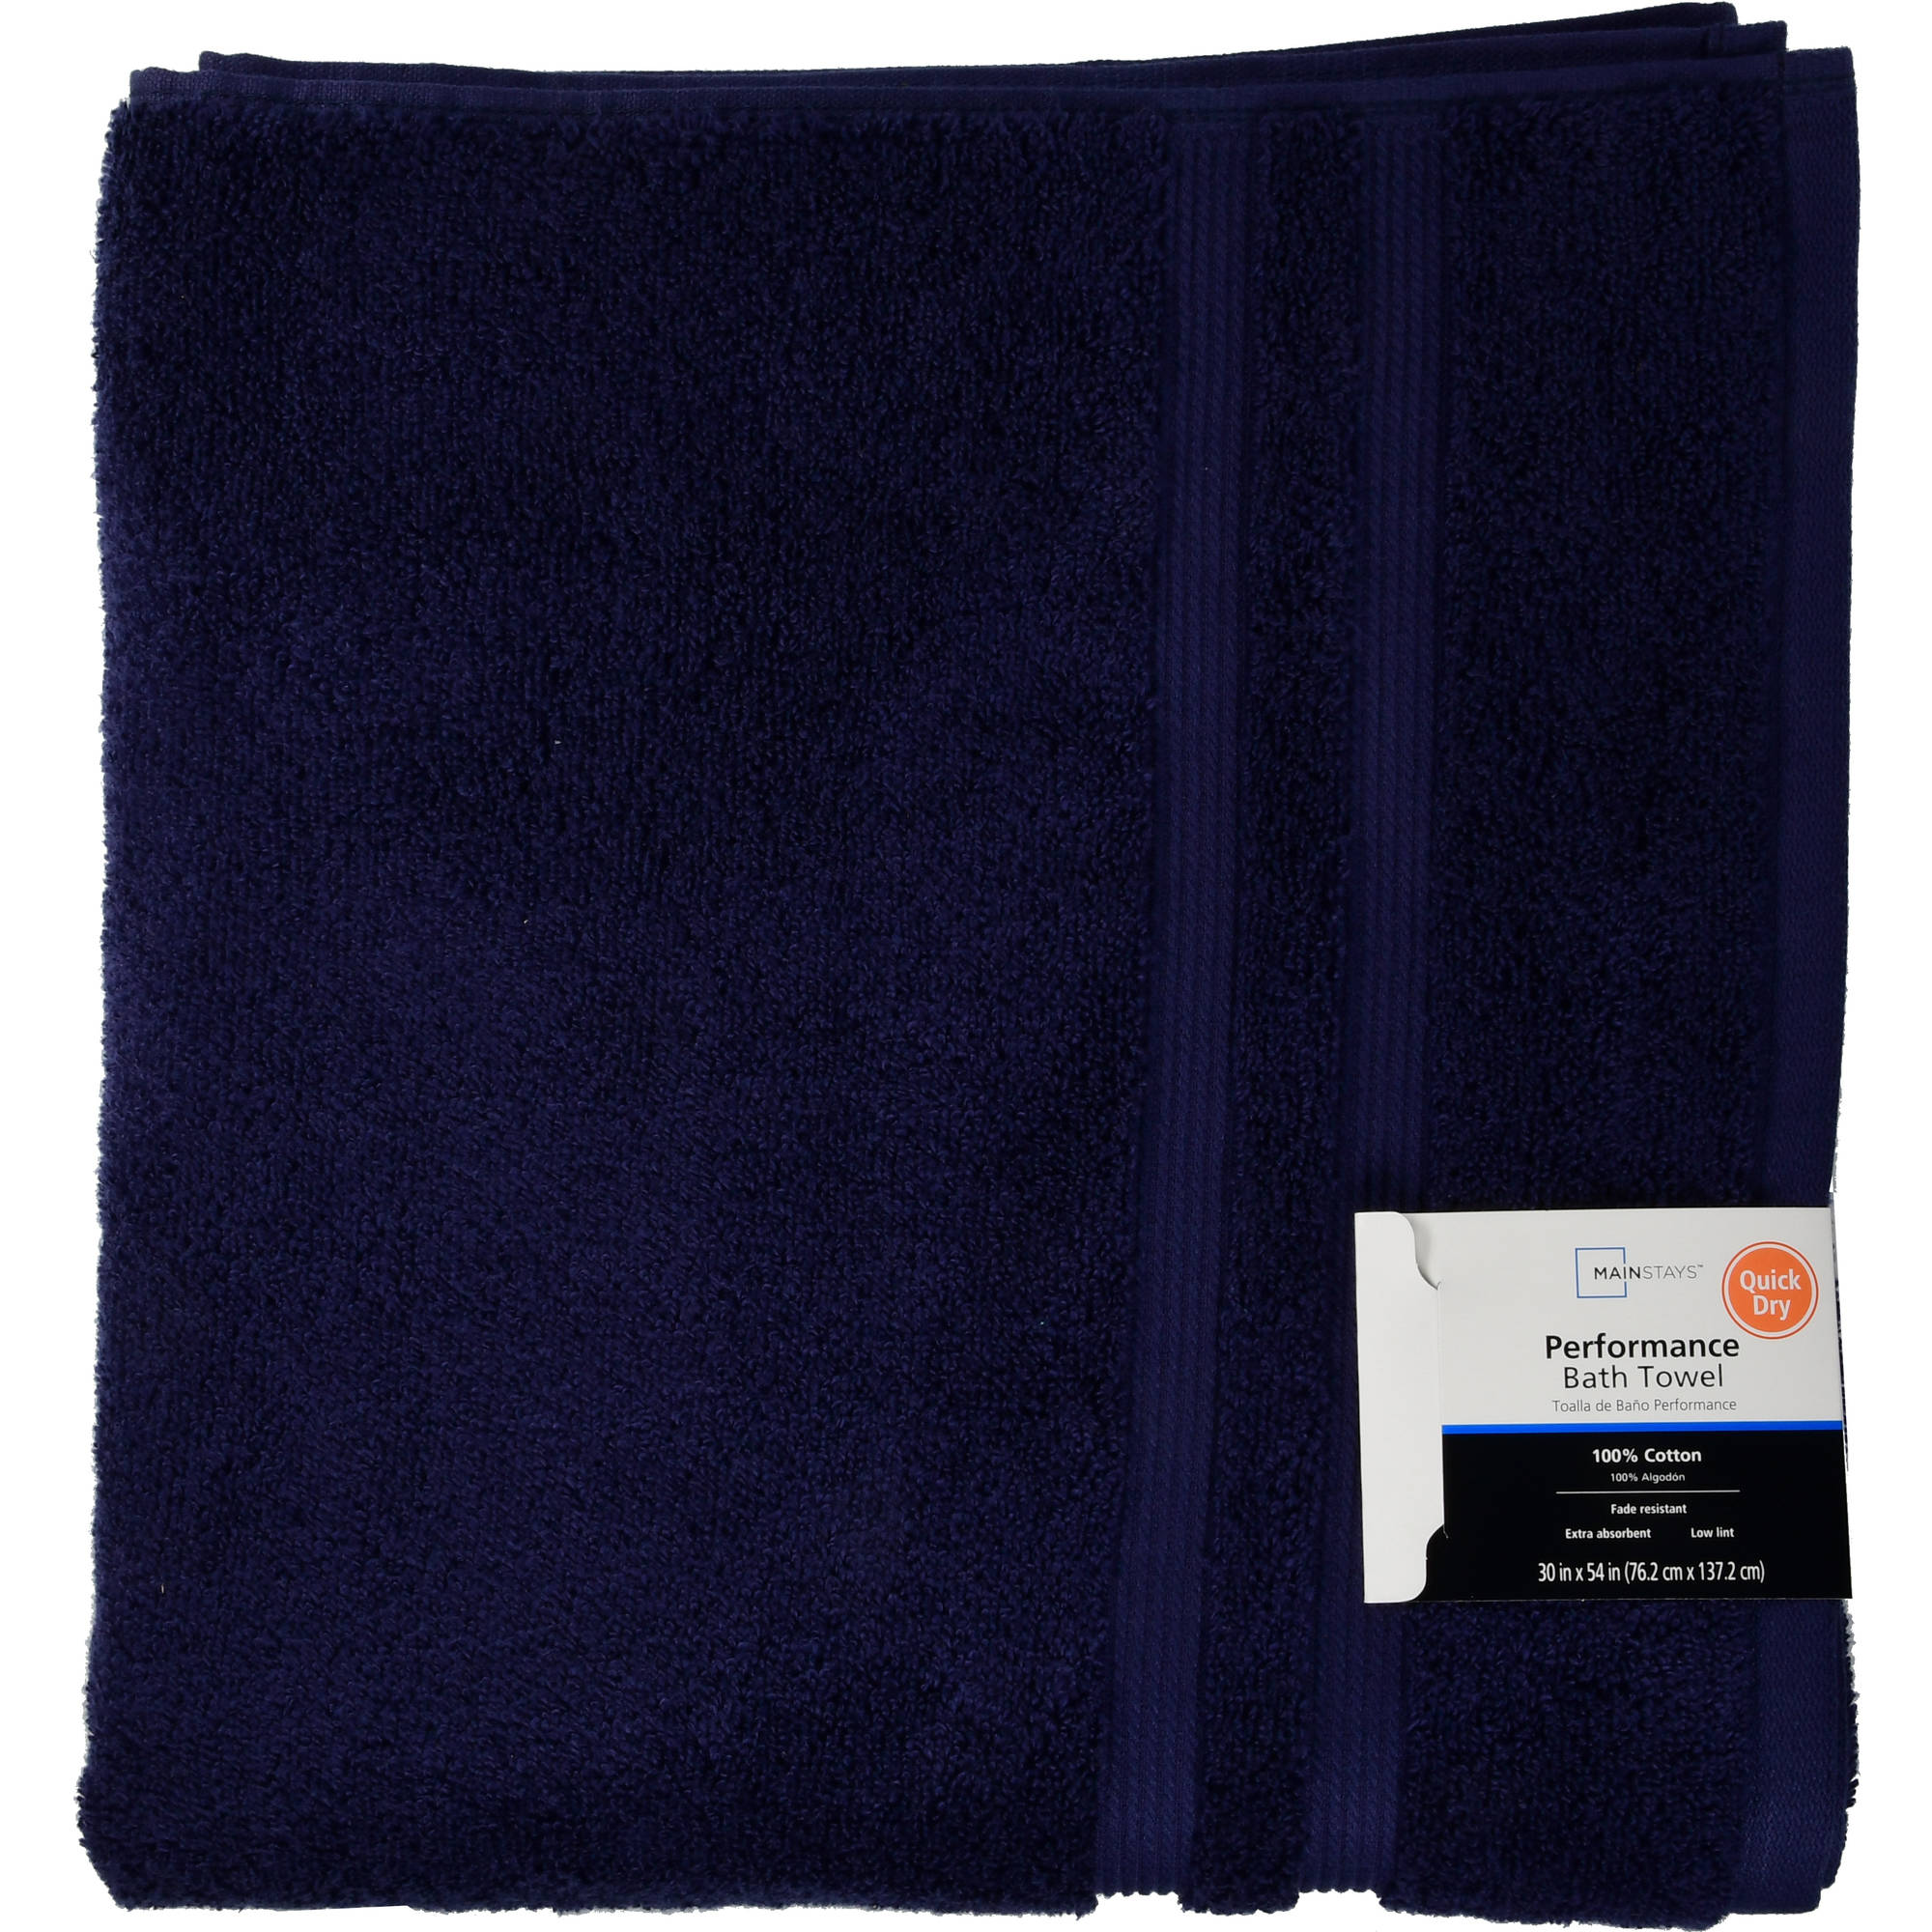 Mainstays Ms Performance Bath Towel by